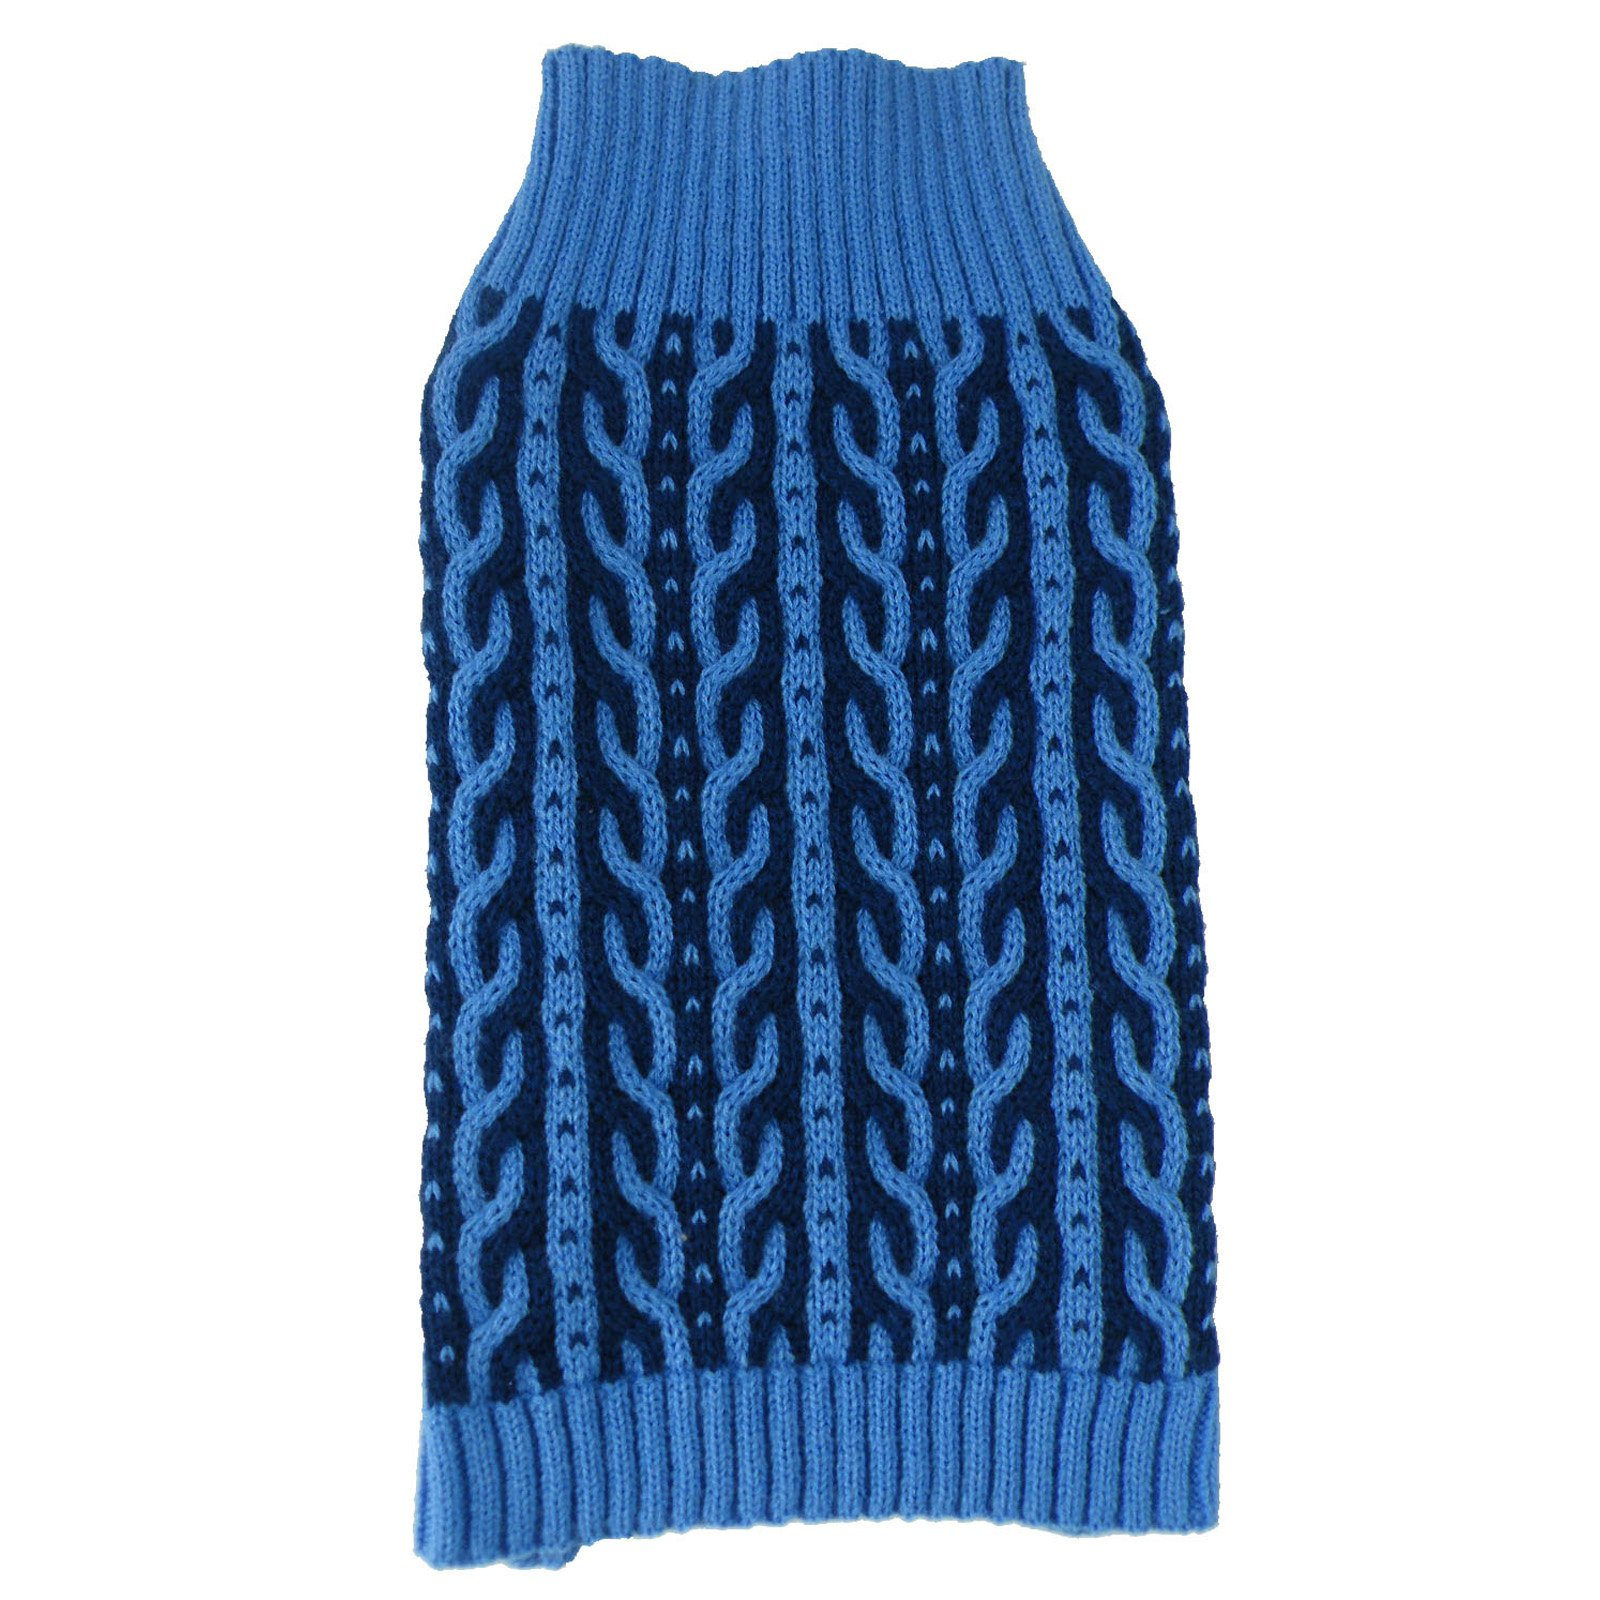 Pet Life Harmonious Dual Color Weaved Heavy Cable Knitted Fashion Designer Dog Sweater